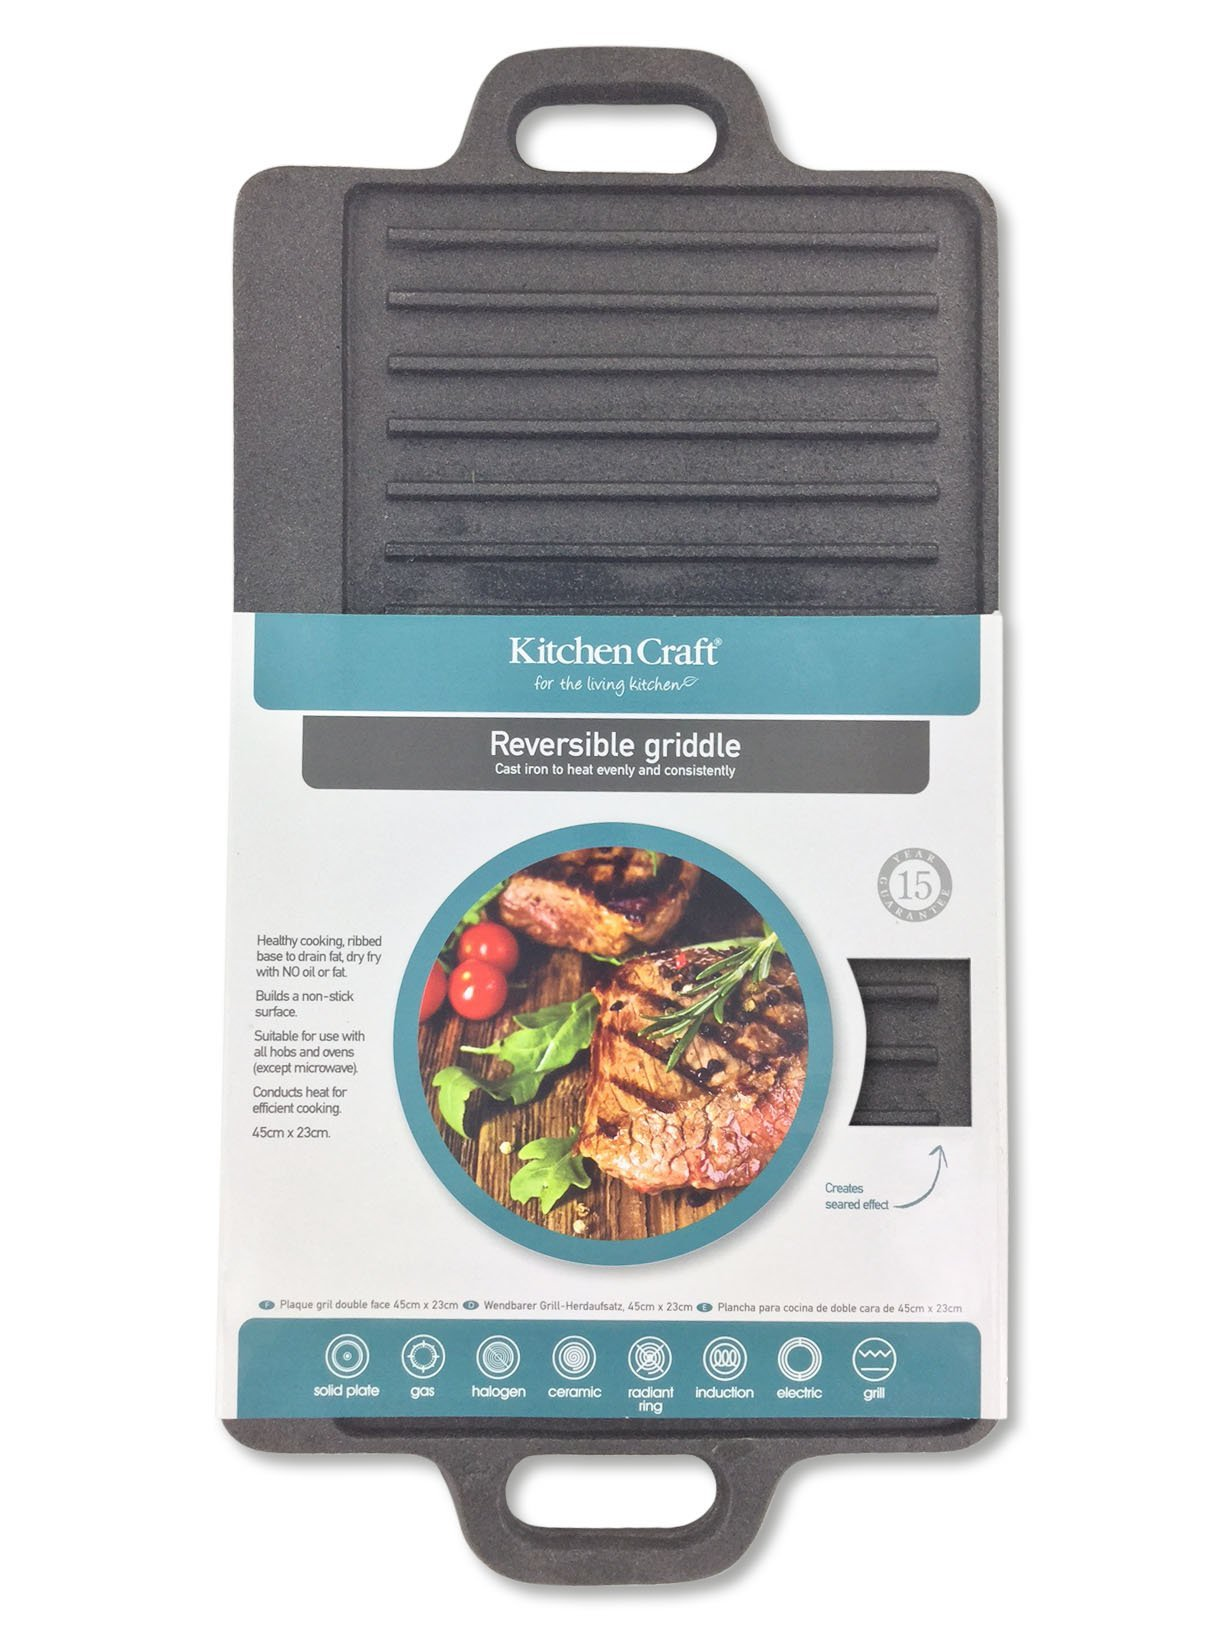 KitchenCraft Cast Iron Griddle Plate with Non Stick Finish and Handles, Induction Safe, 45 x 23 cm